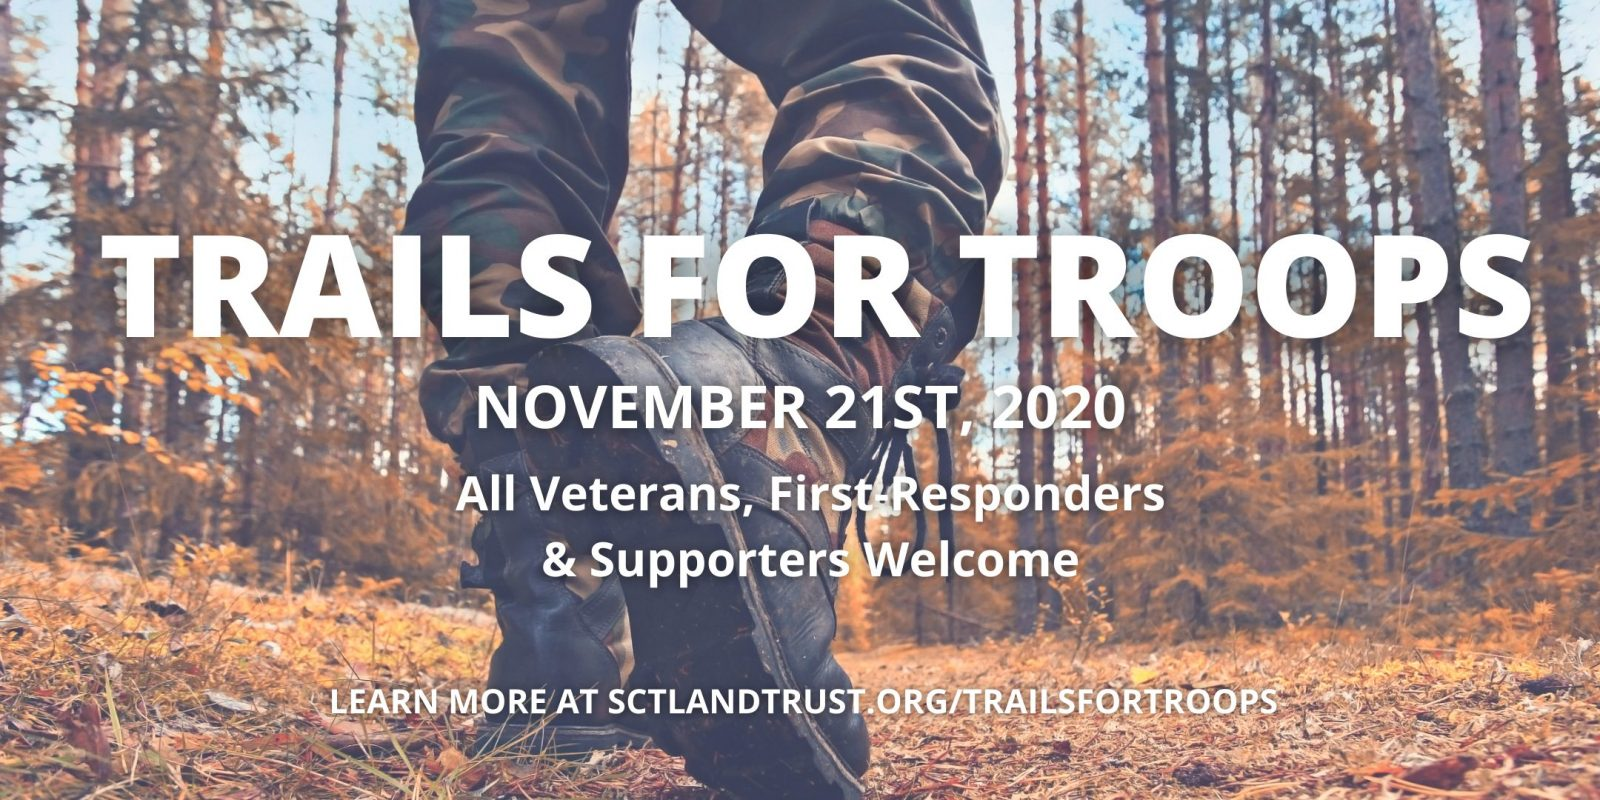 Trails for Troops: 5K Ruck & 5K Run at The Ridge Nature Area @ The Ridge Nature Area